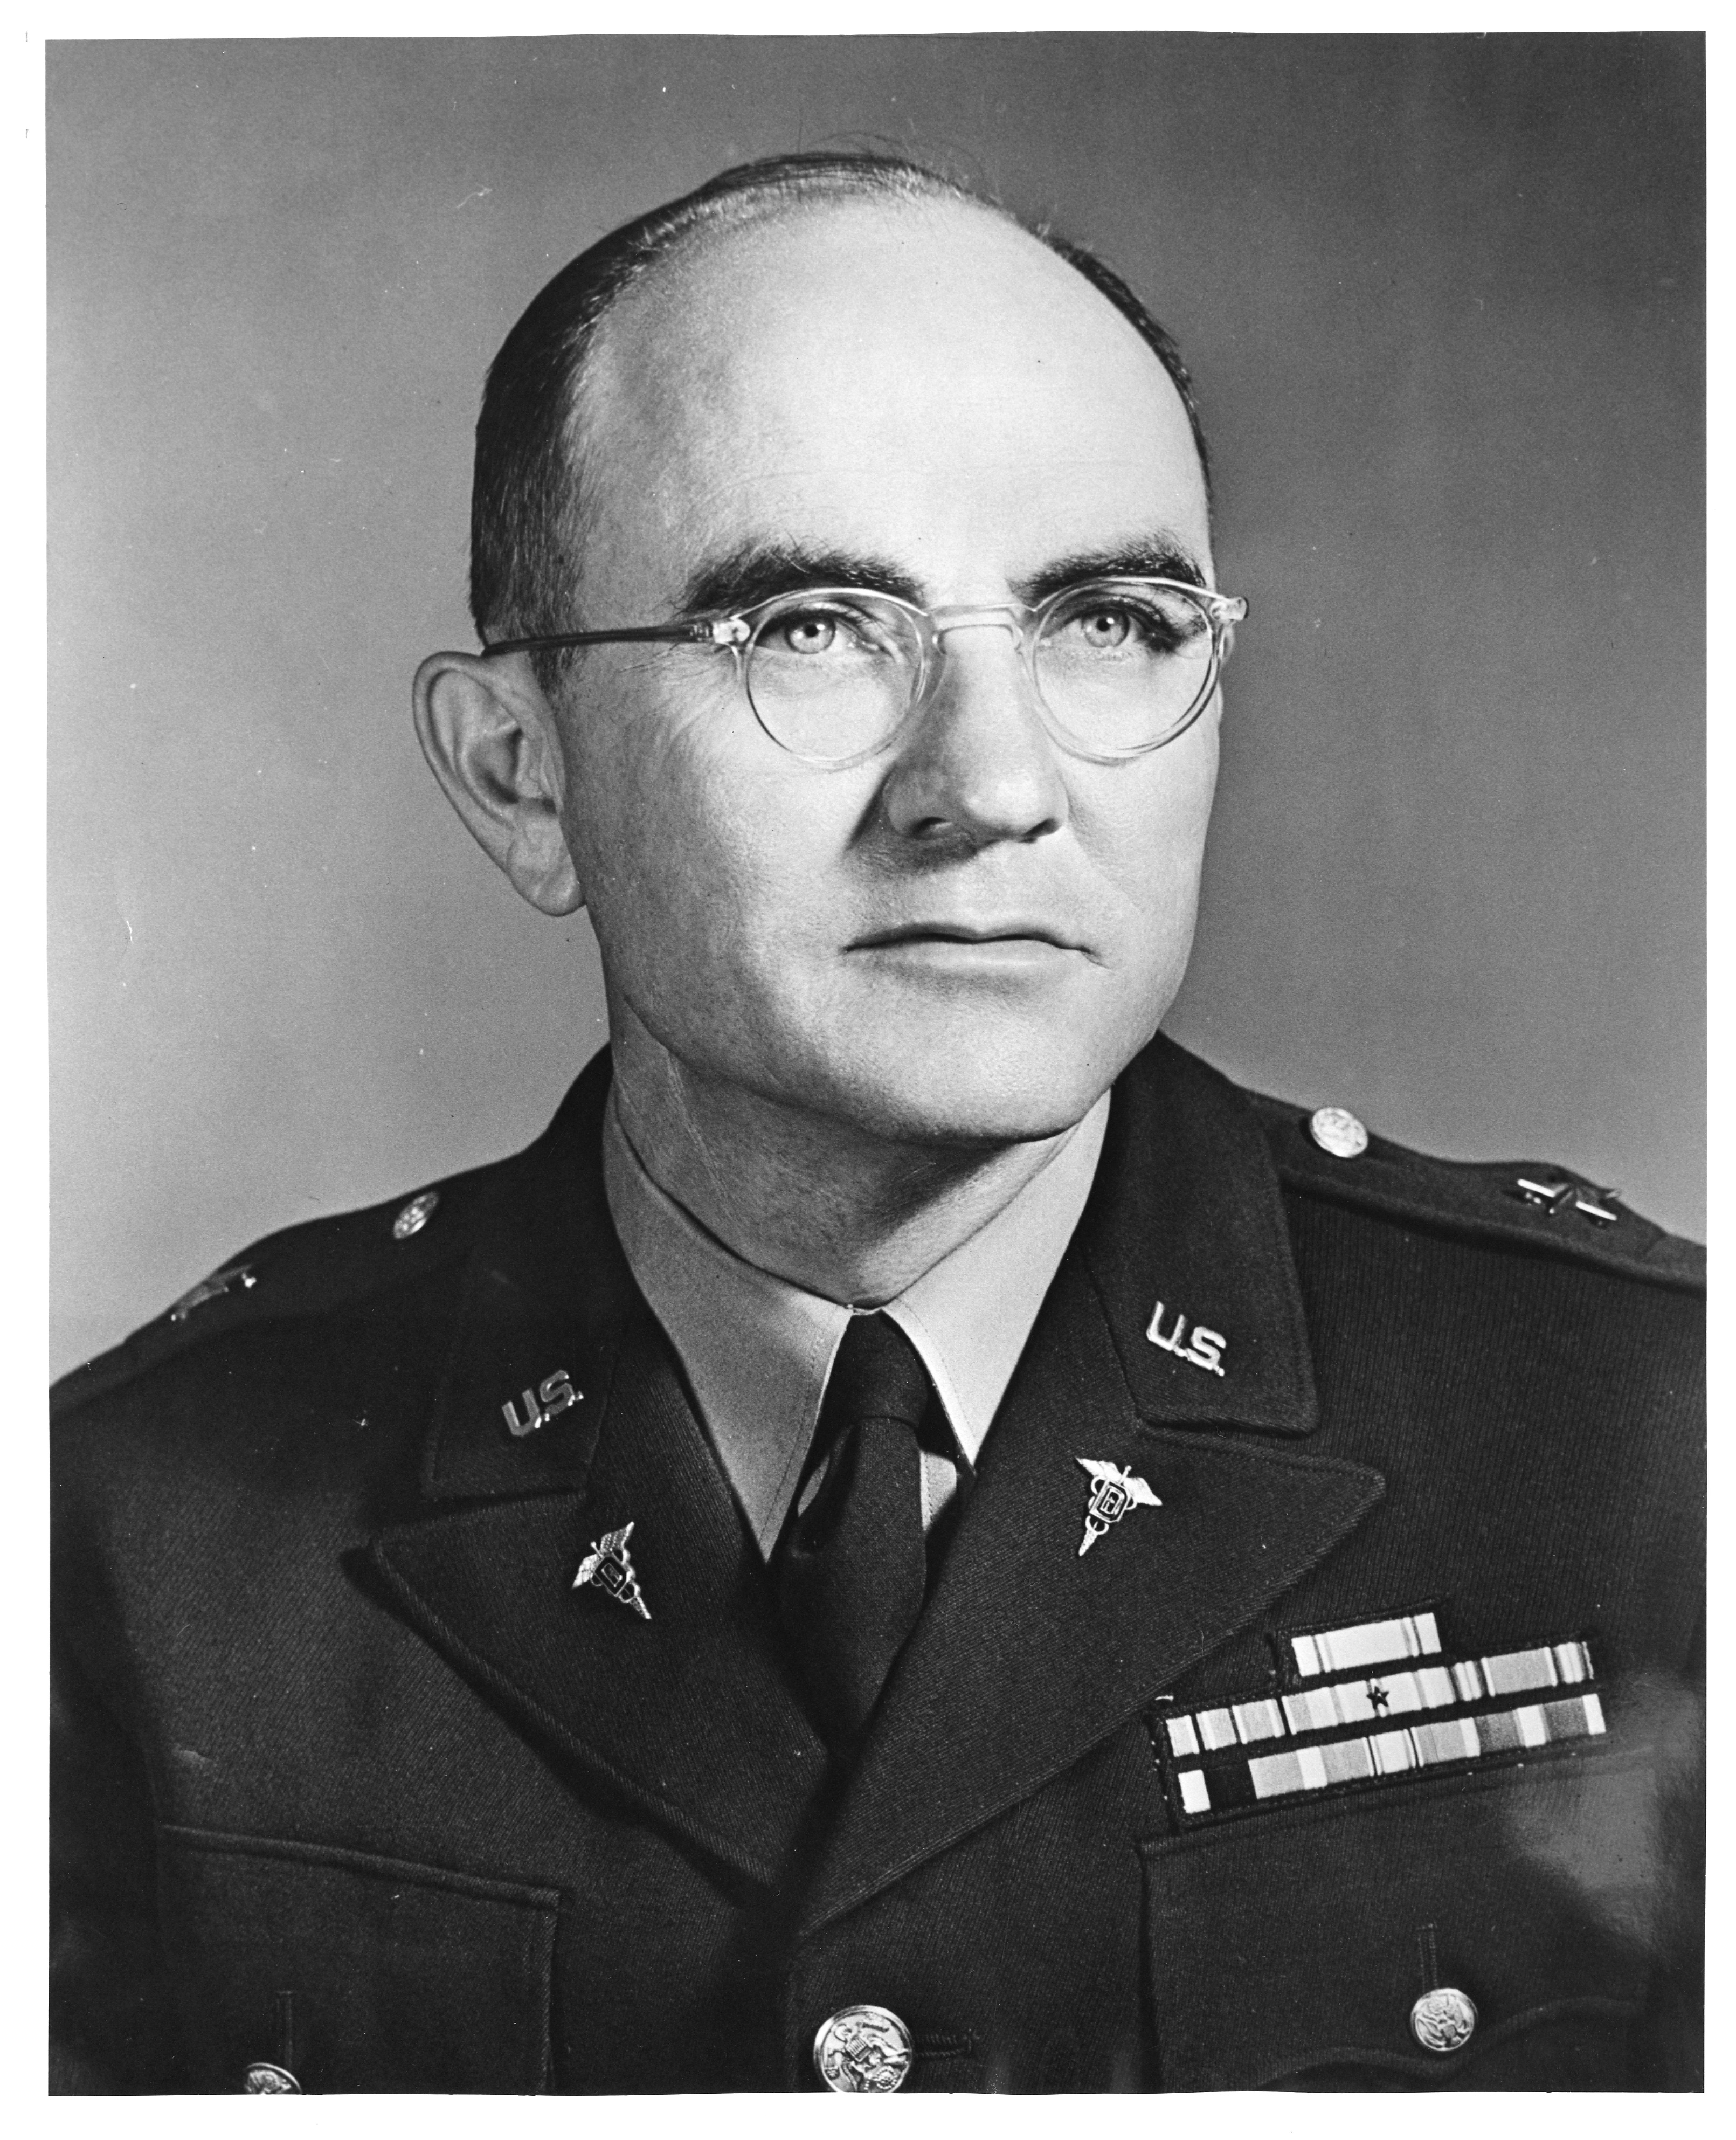 Portrait photograph of a person in a military uniform and wearing glasses.